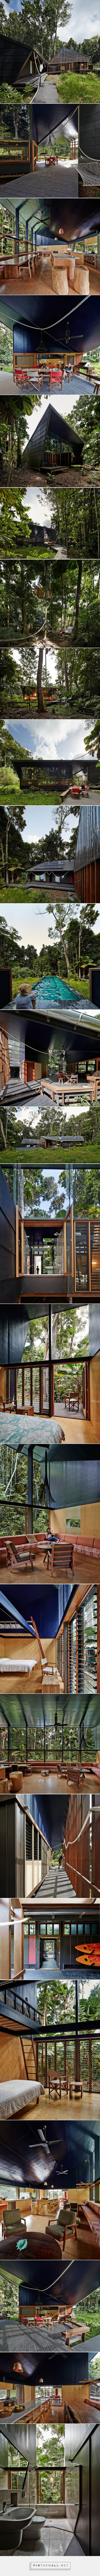 An Off-the-Grid Home Appropriate to its Stunning Rainforest Location - created via https://pinthemall.net